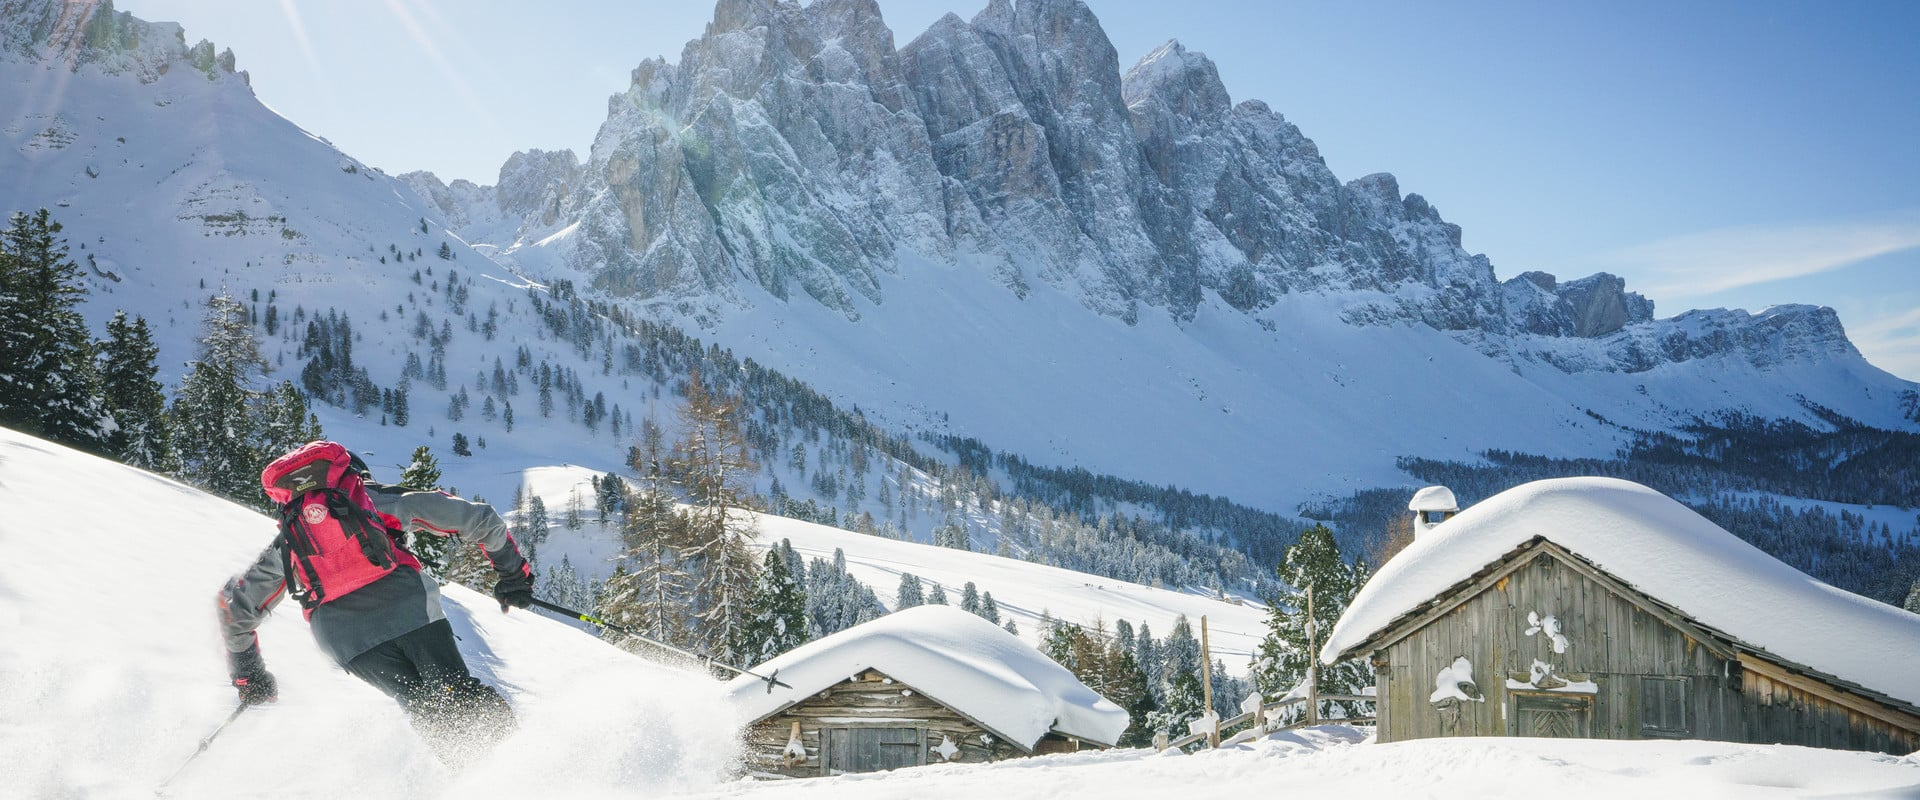 Skiing and fun in the Dolomites' winter wonderland